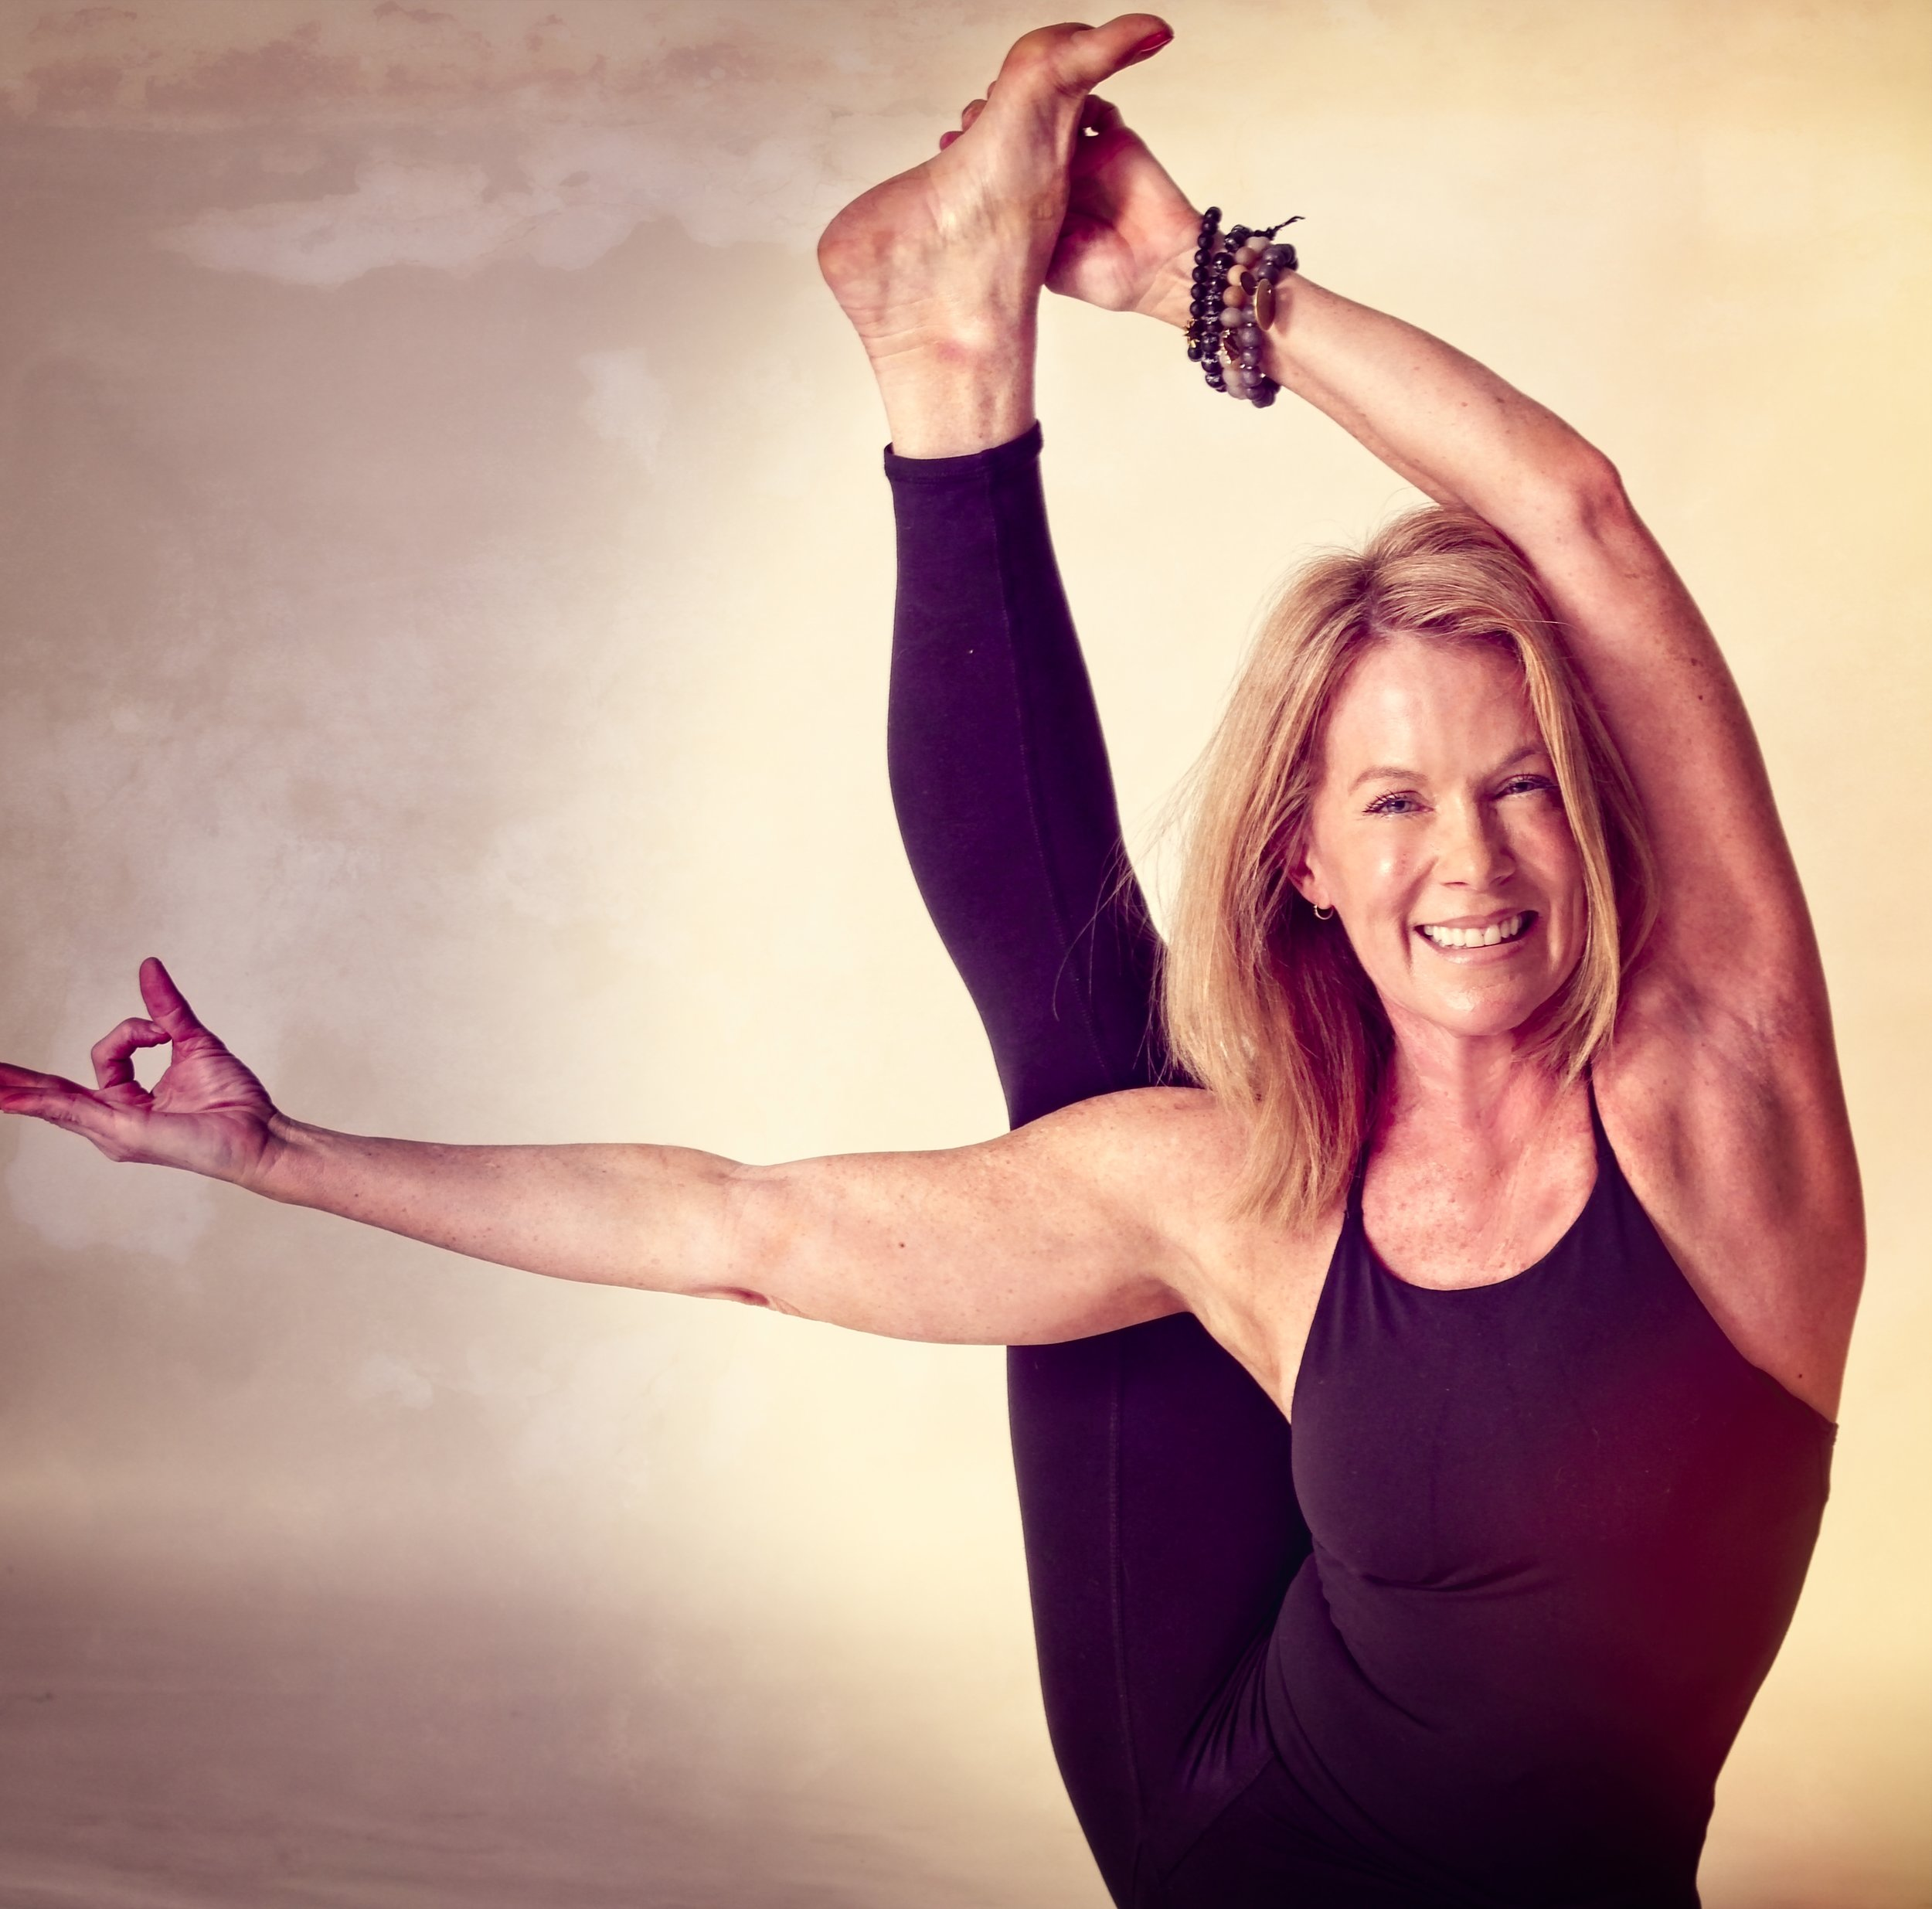 Stacey Allen - Stacey will kick your butt with a smile, and inspire you with her motivational mantras. She takes yoga from the mat, to day-to-day challenges and encourages her students in every practice.